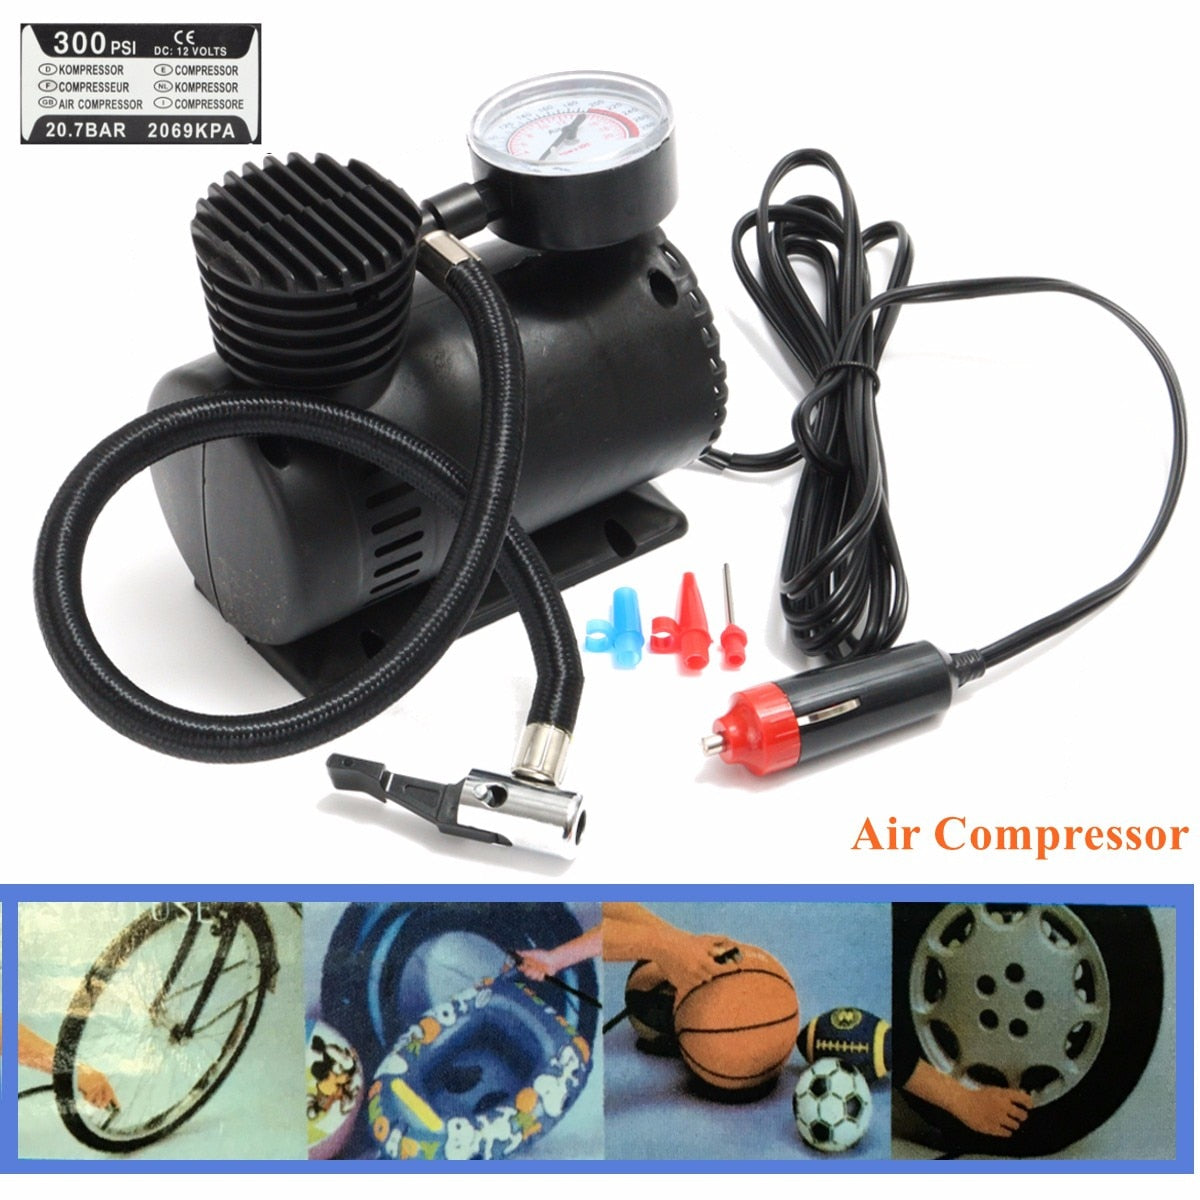 300 PSI 12V Portable Mini Air Compressor with 2 Nozzle Adapters Accessories